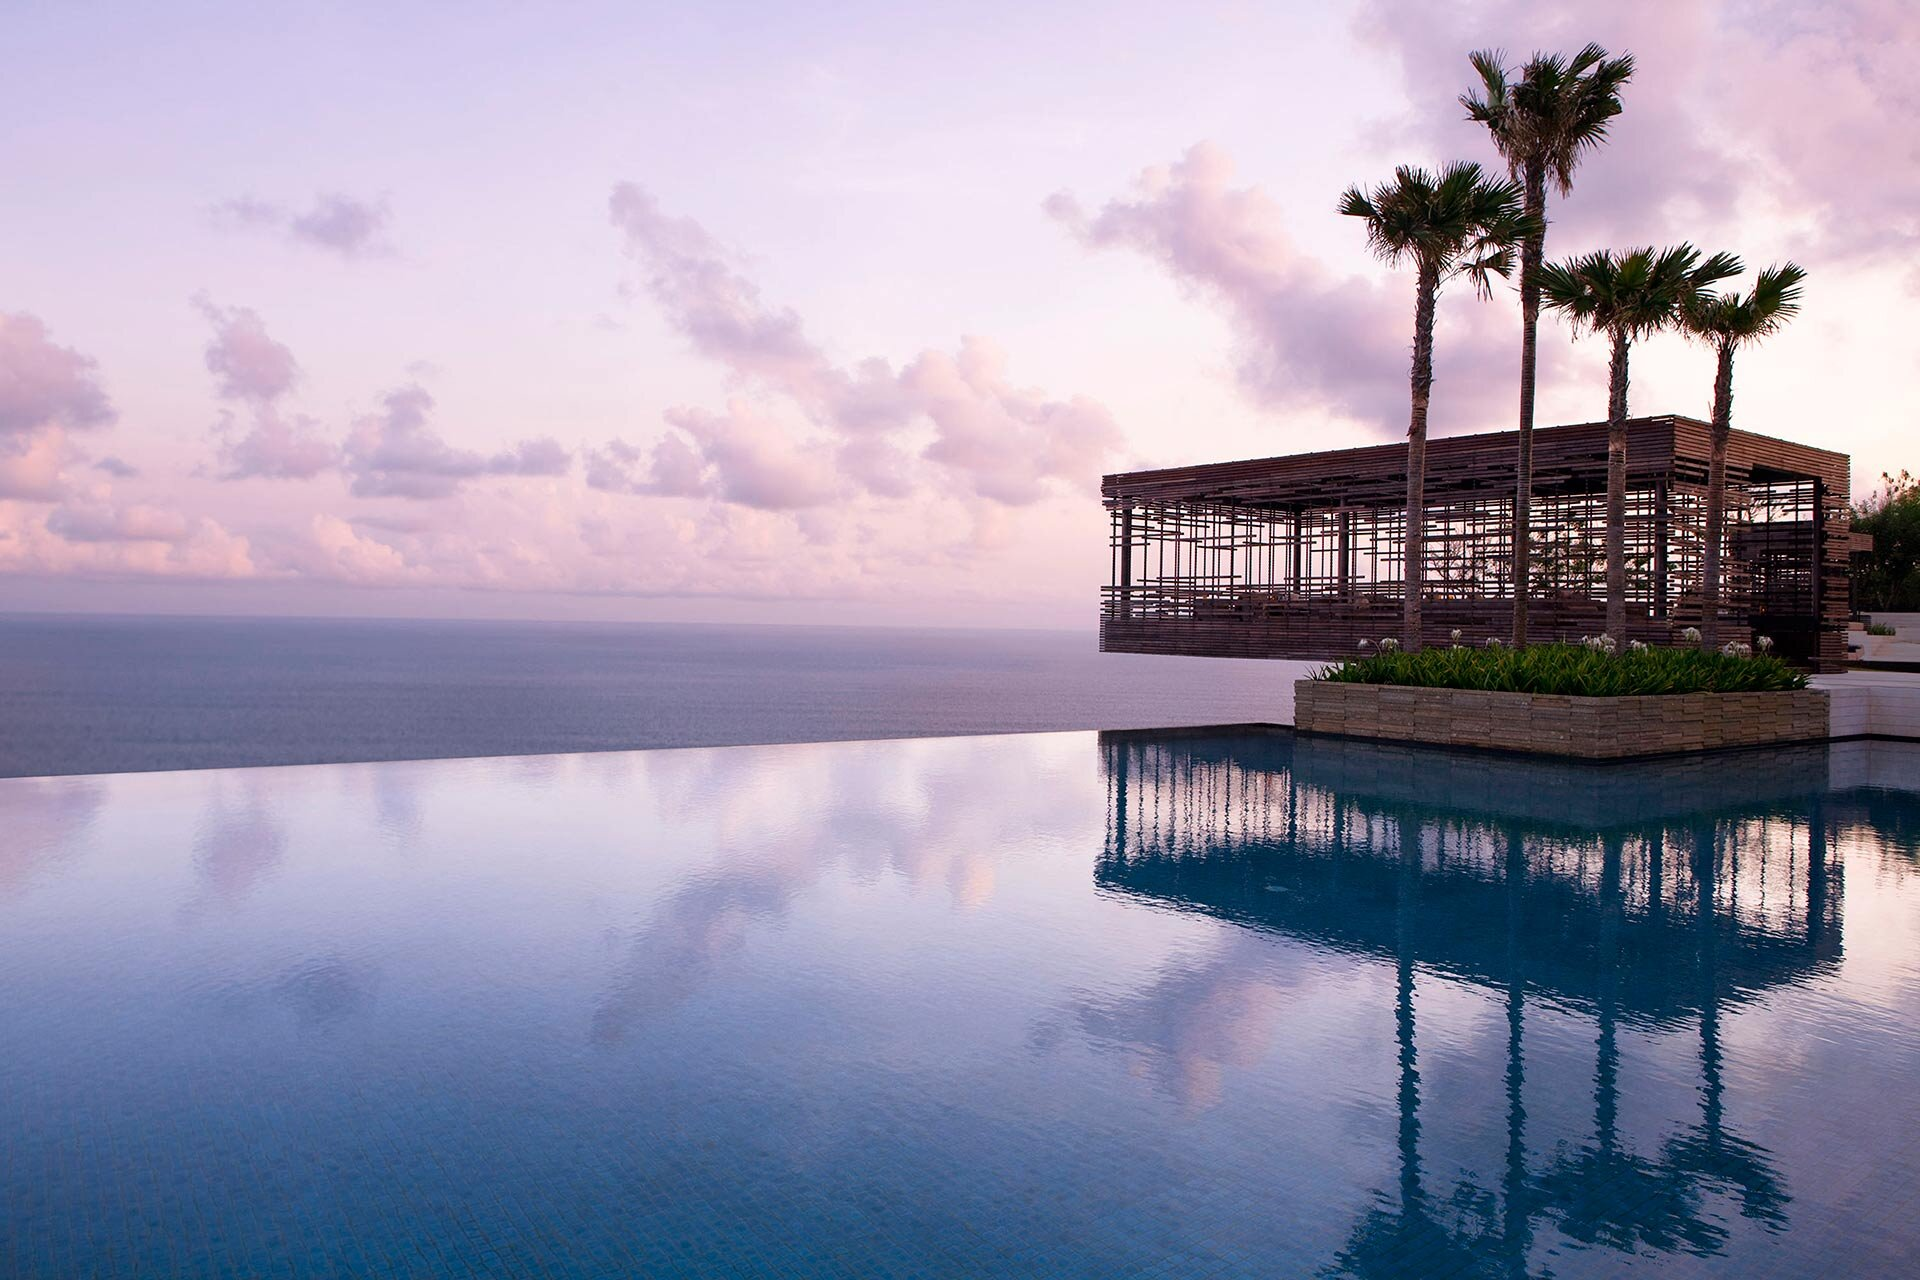 Alila Resorts - New to the Hyatt family, Alila properties combine innovative design with unique locations. Our current favorite: Alila Villas Uluwatu, Bali (pictured here).Our Perk: Enjoy a complimentary 4th night at the following Alila properties: Alila Solo, Java; Alila SCBD, Jakarta; Alila Ubud, Bali; Alila Seminyak, Bali; Alila Villas Uluwatu, Bali; Alila Bangsar, Kuala Lumpur. Enjoy a complimentary 3rd night at the following Alila properties: Alila Manggis, Bali; Alila Villas Koh Russey, Cambodia